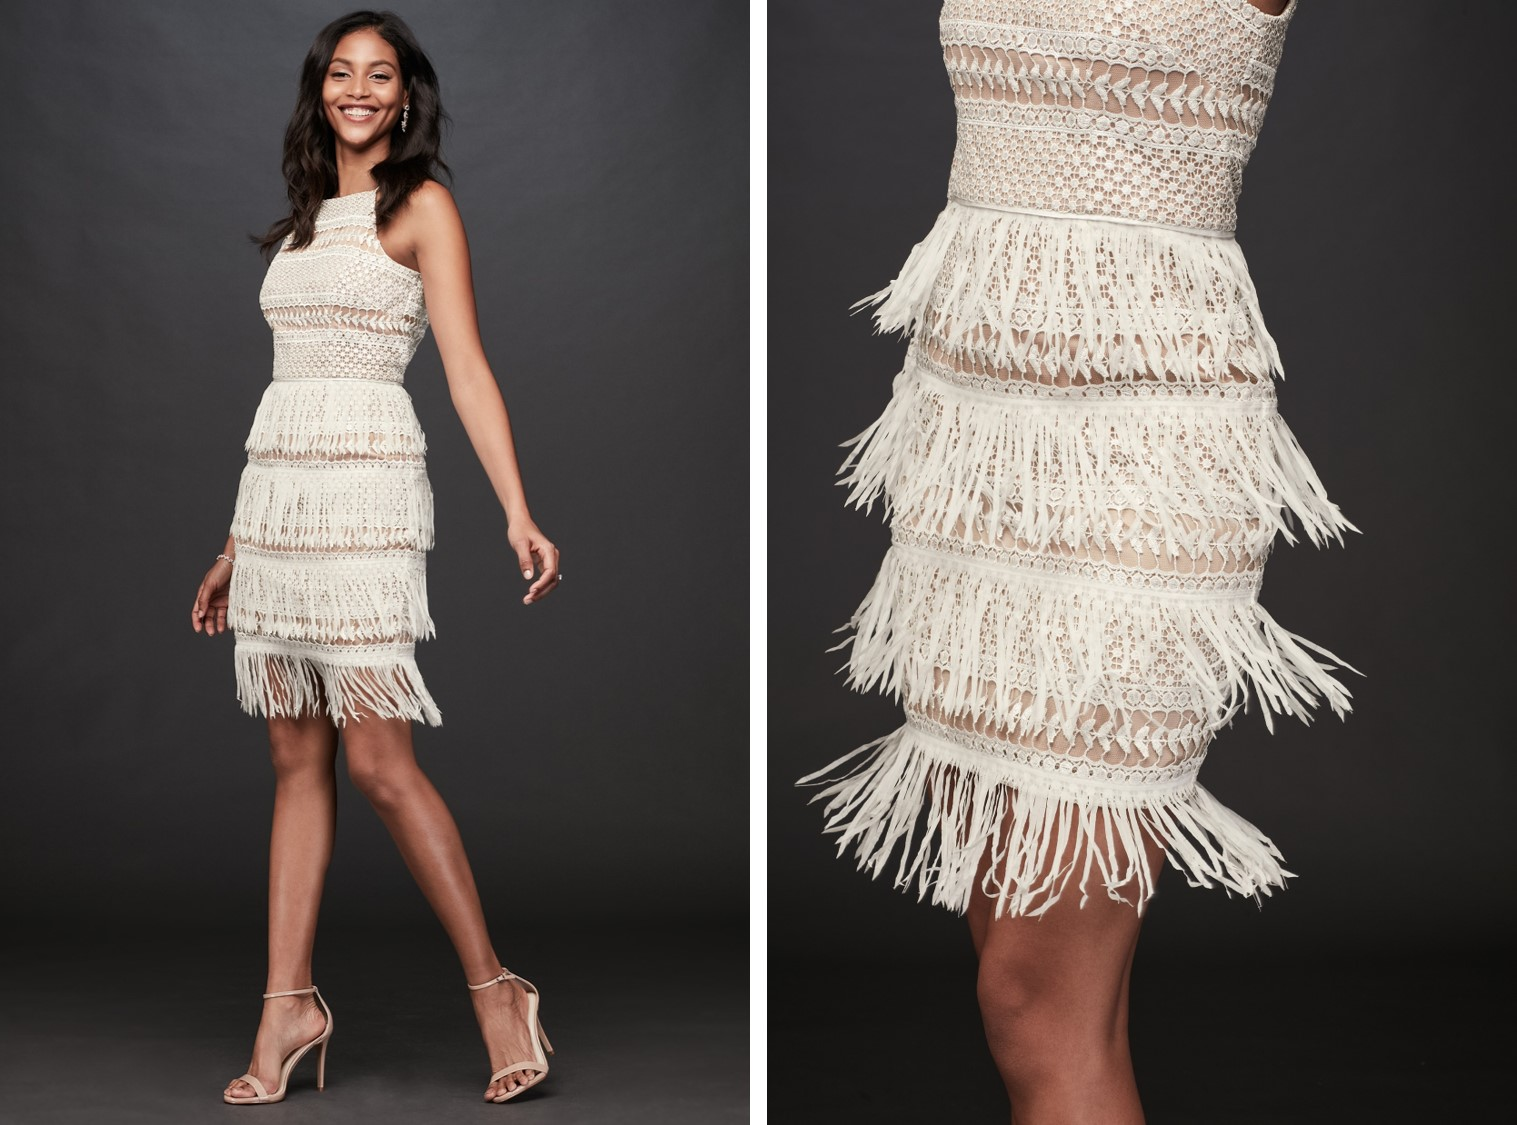 Bride in crochet and fringe nude and white mini dress | After-party dresses from David's Bridal